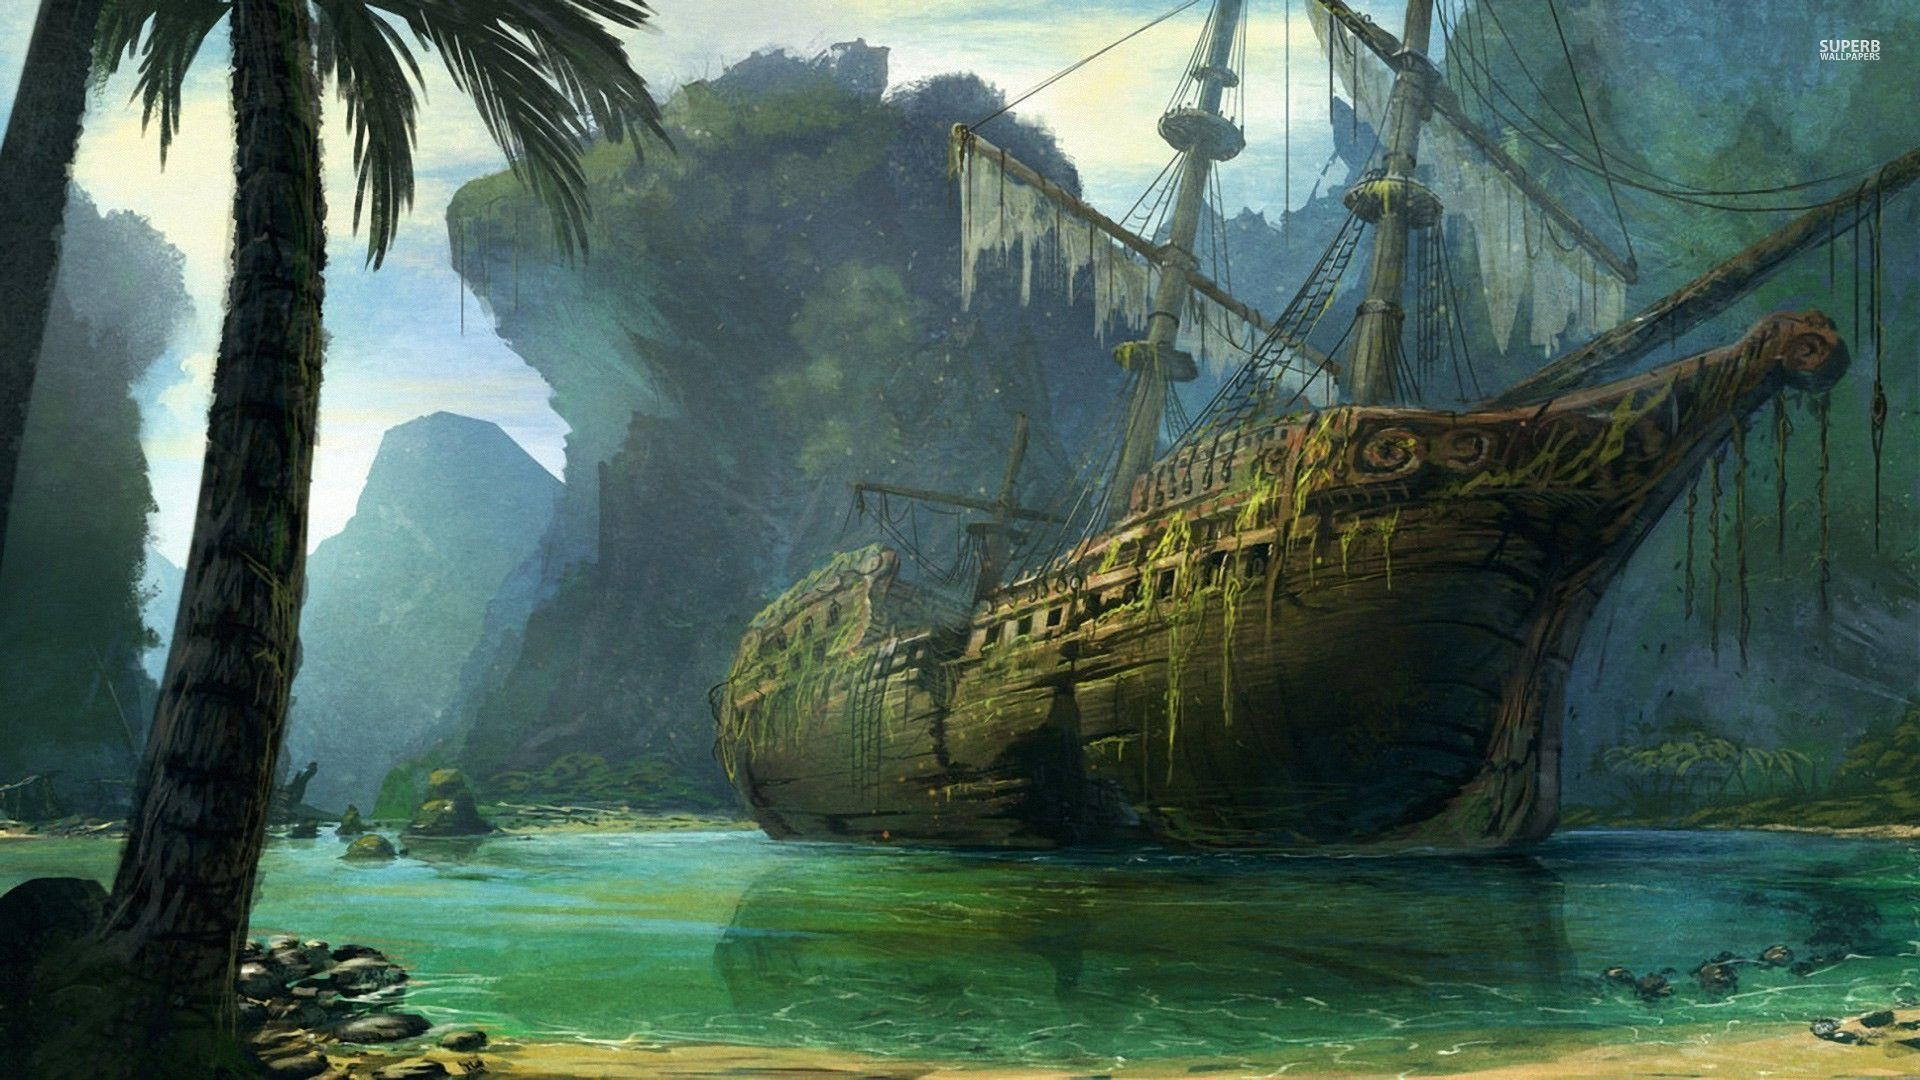 Pictures Of Pirates Pirate Ship Wallpapers Wallpaper Cave Fantasy Landscape Pirate Island Pirate Ship